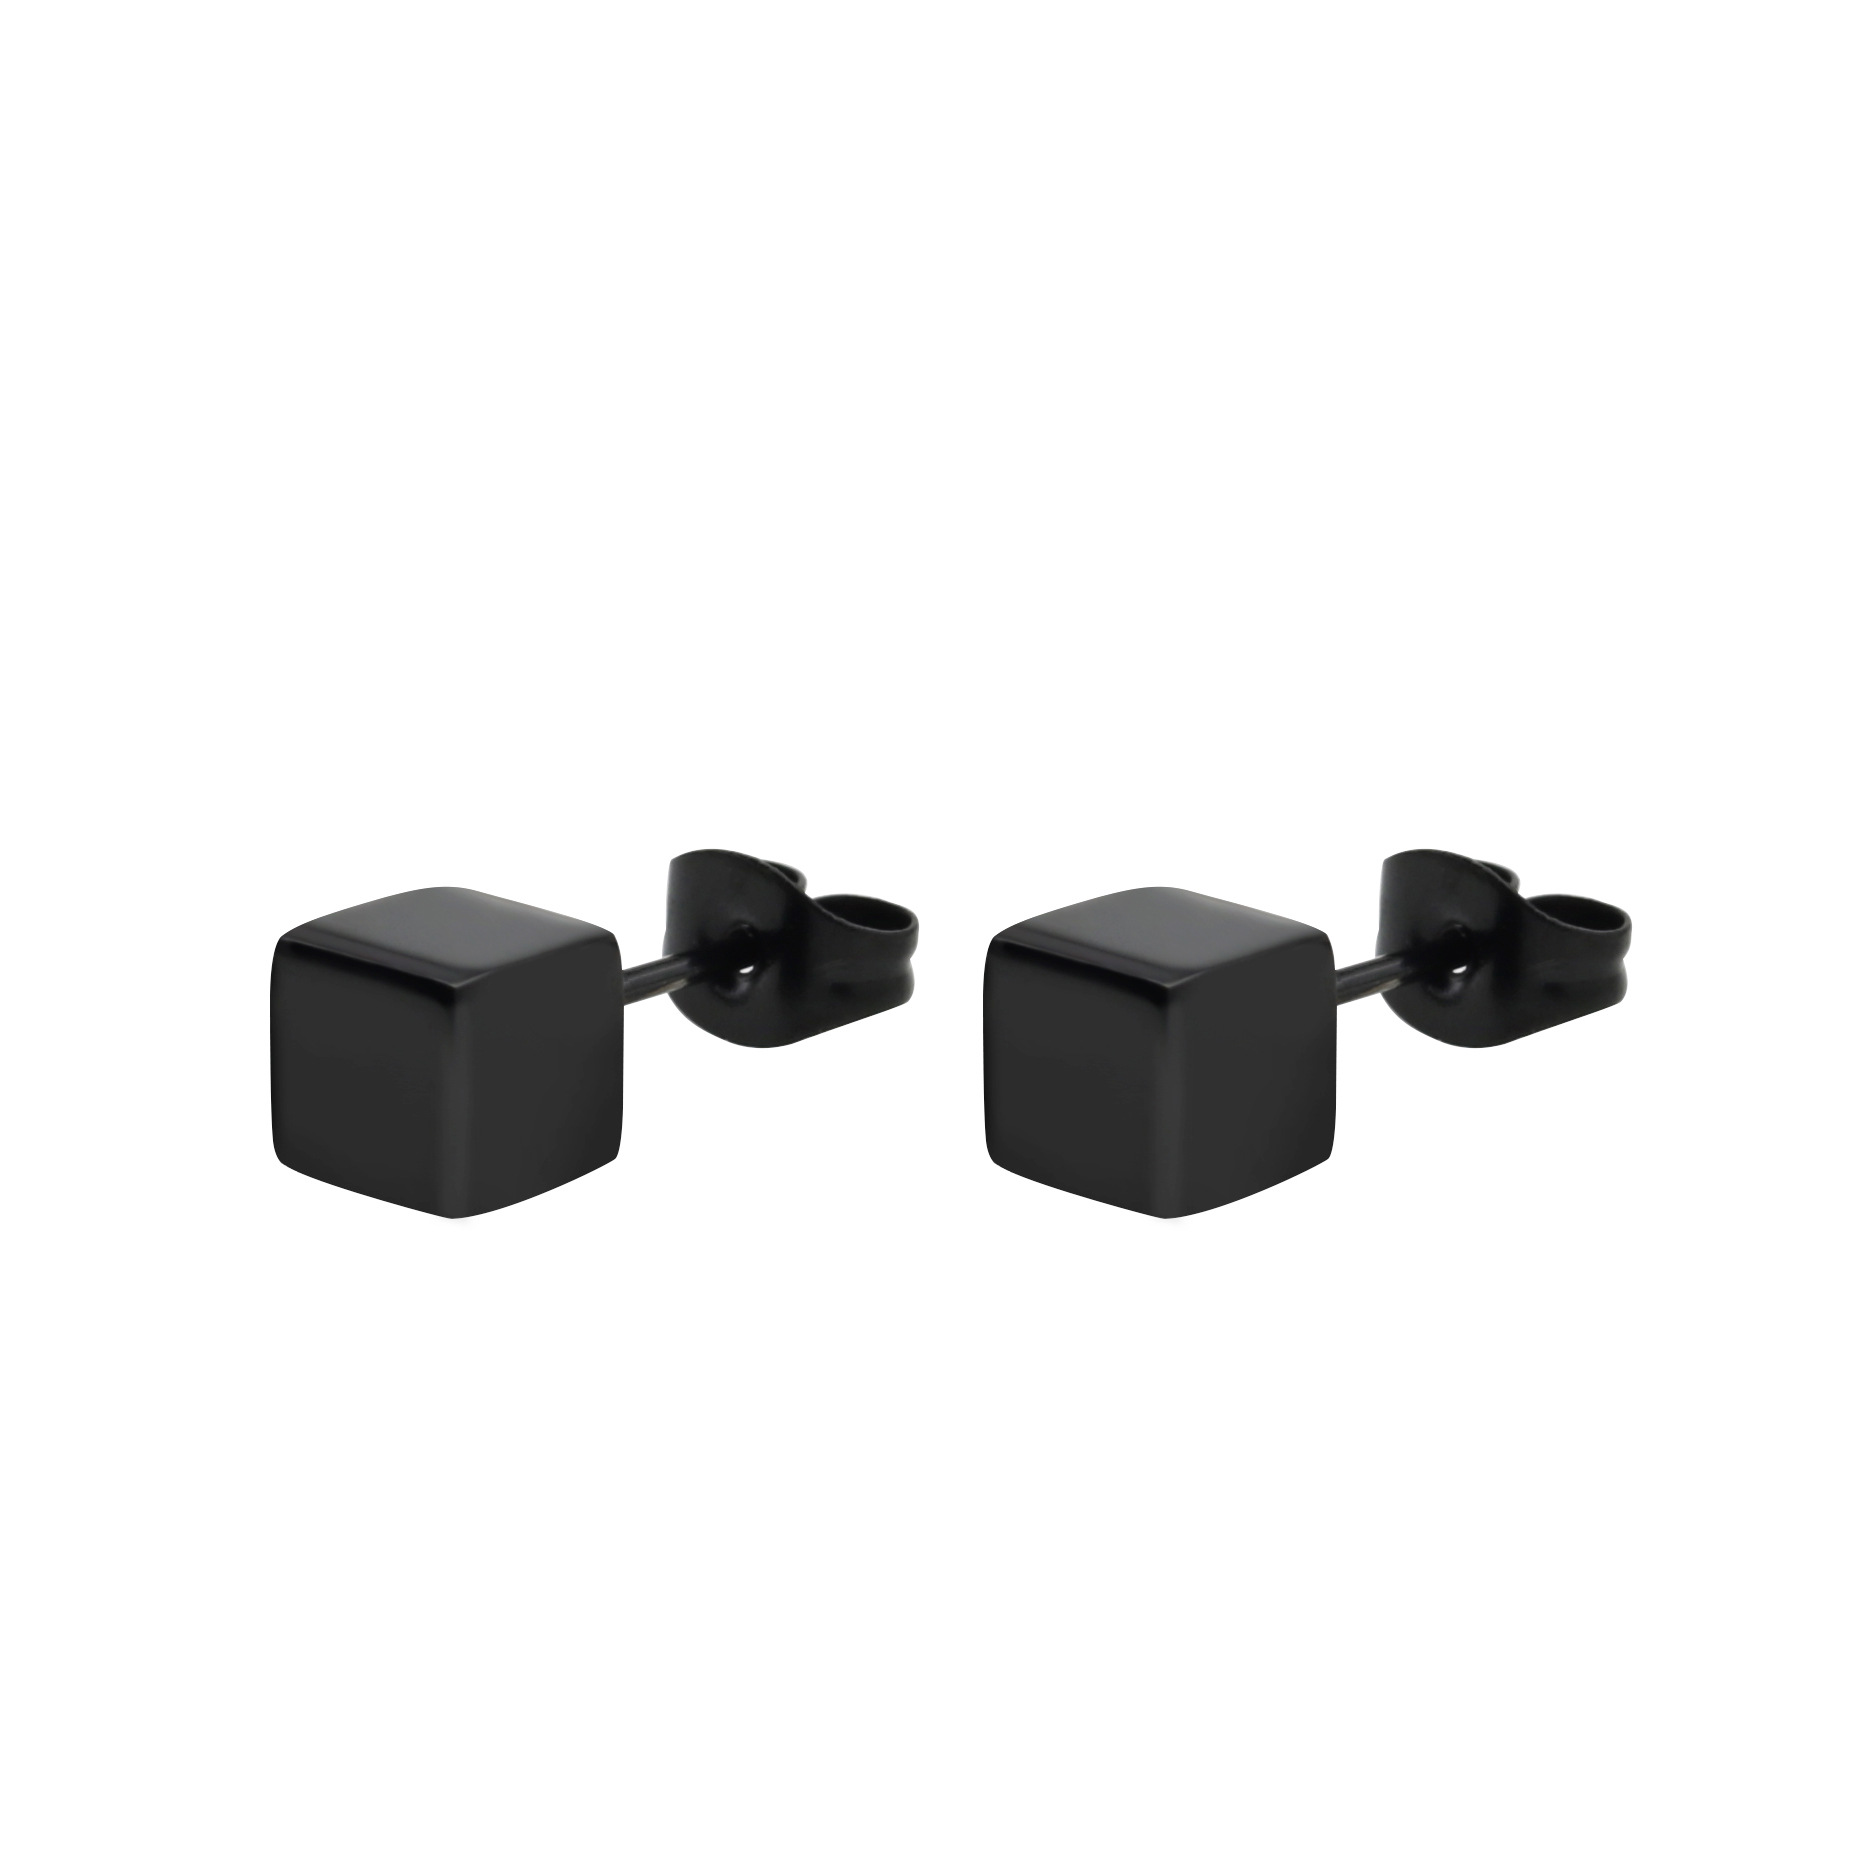 Stylish Square Stainless Steel Earrings for Fashionable Look